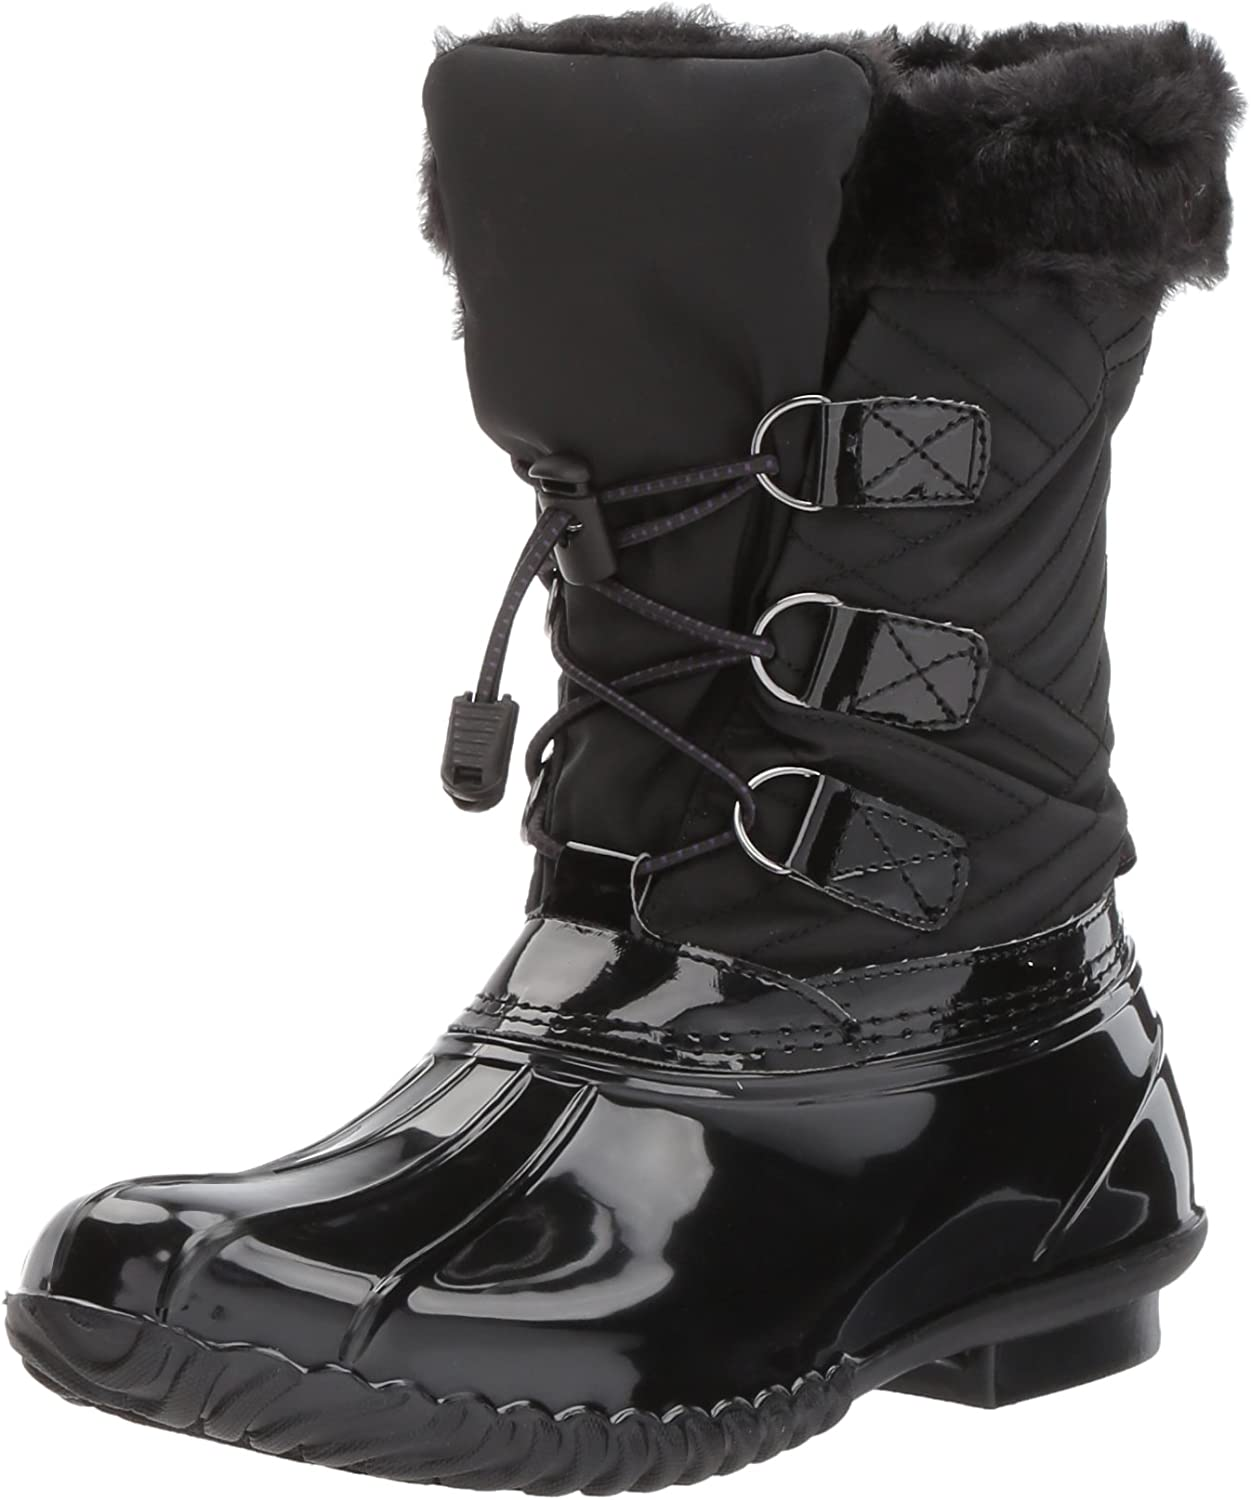 Hampshire-Mid Quilted Snow Boot